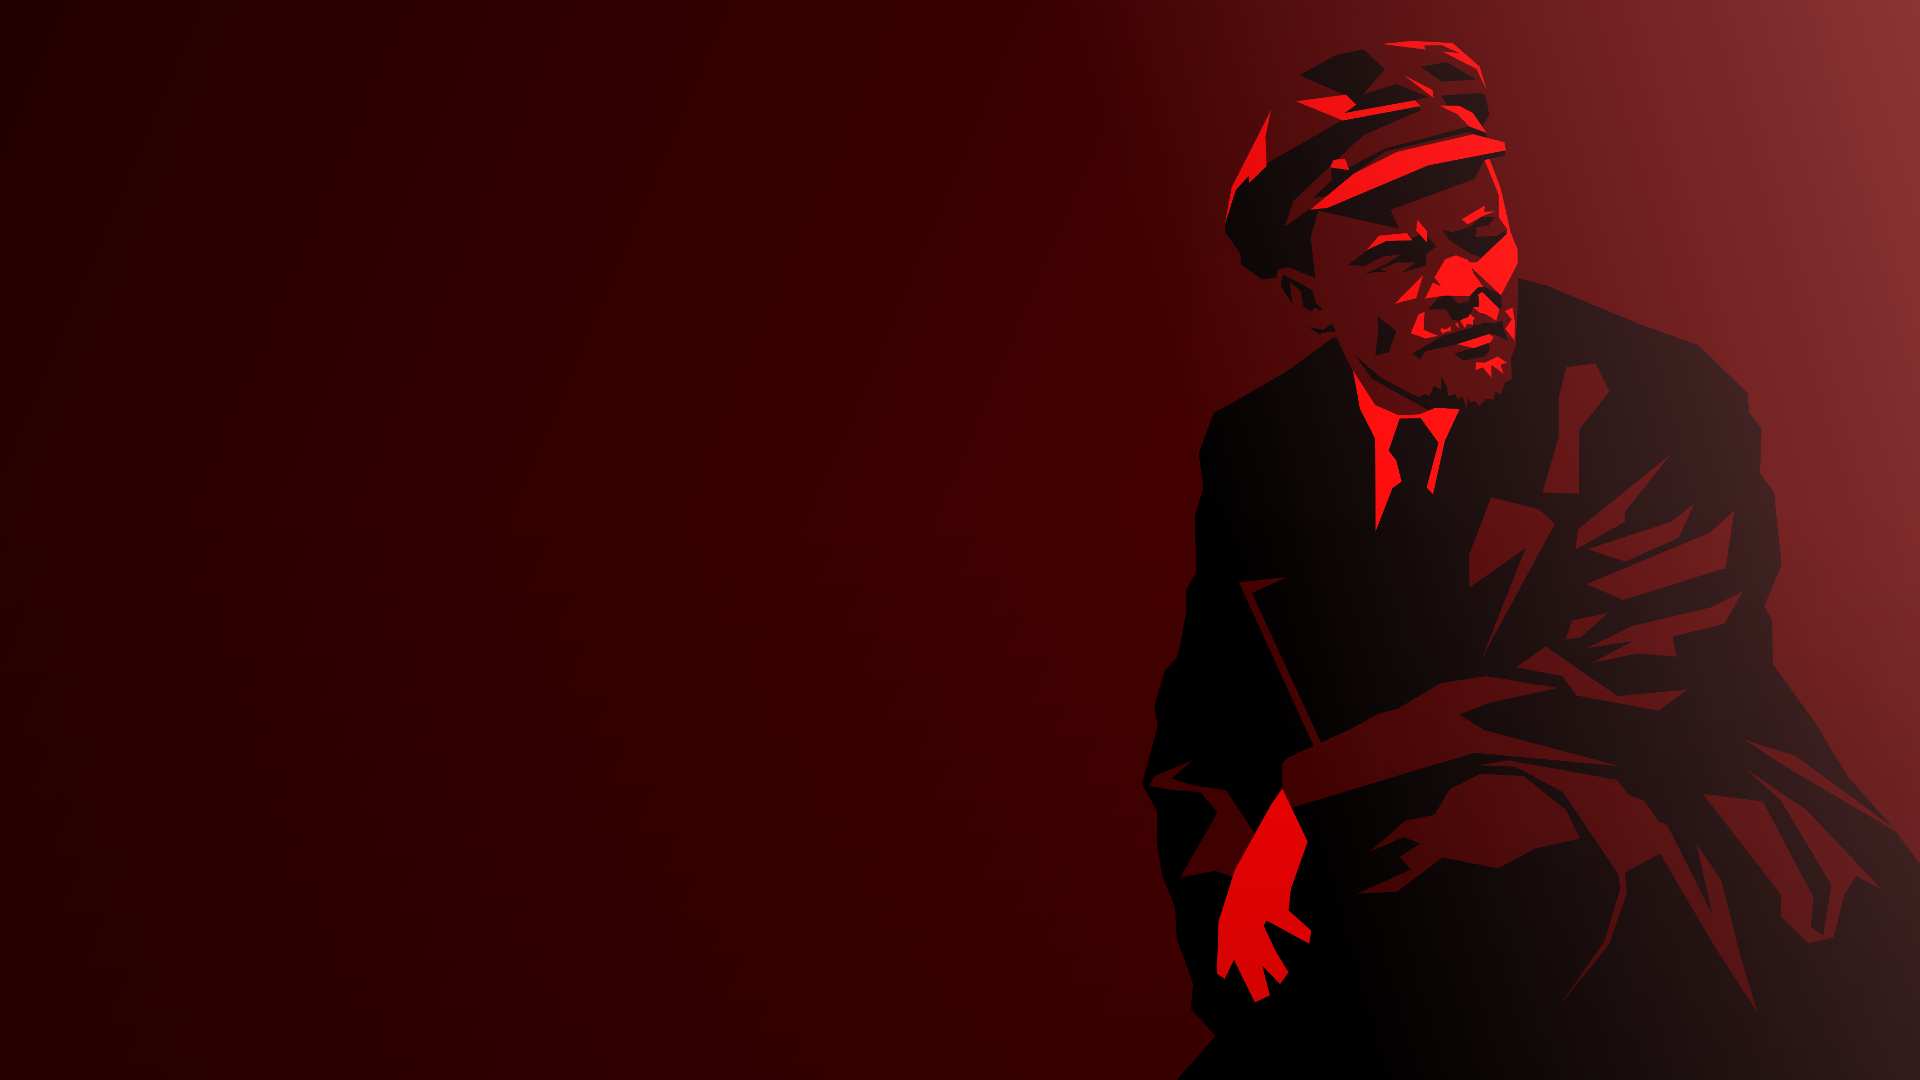 High Quality Image of Lenin - 1920x1080